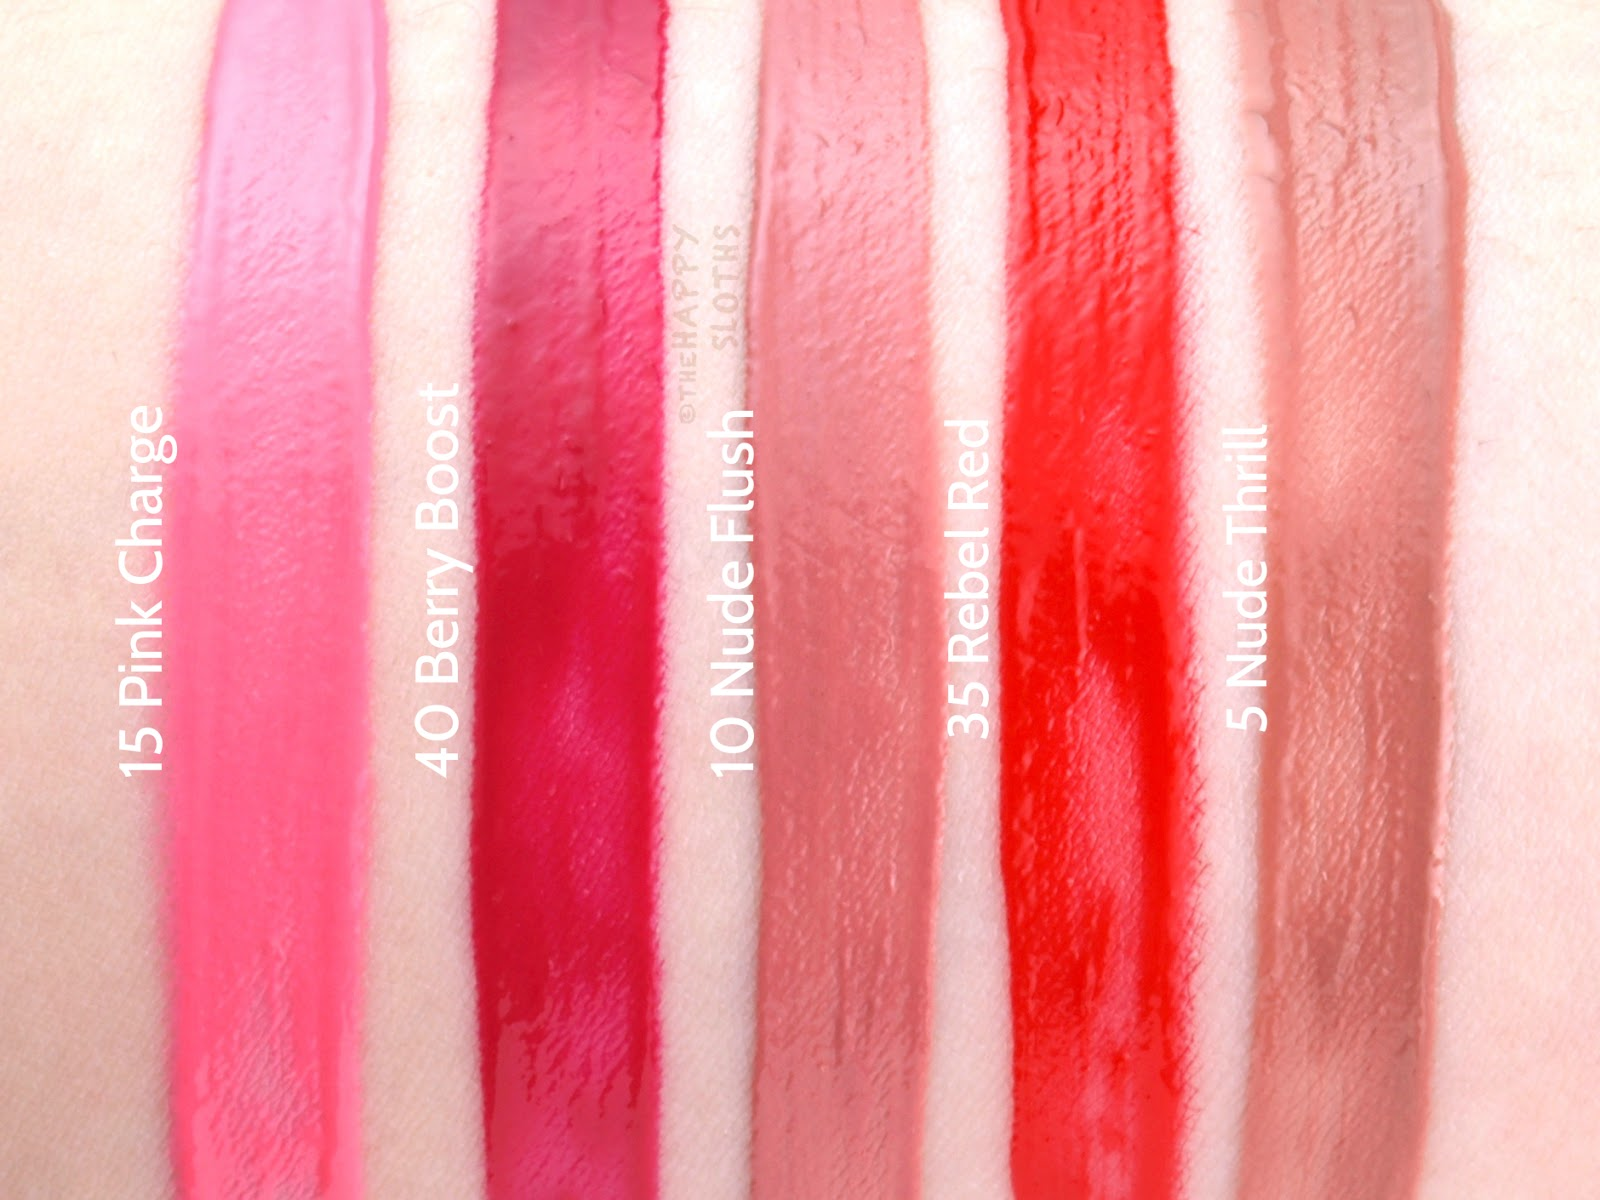 Maybelline Vivid Matte Liquid Lip Color: Review and Swatches